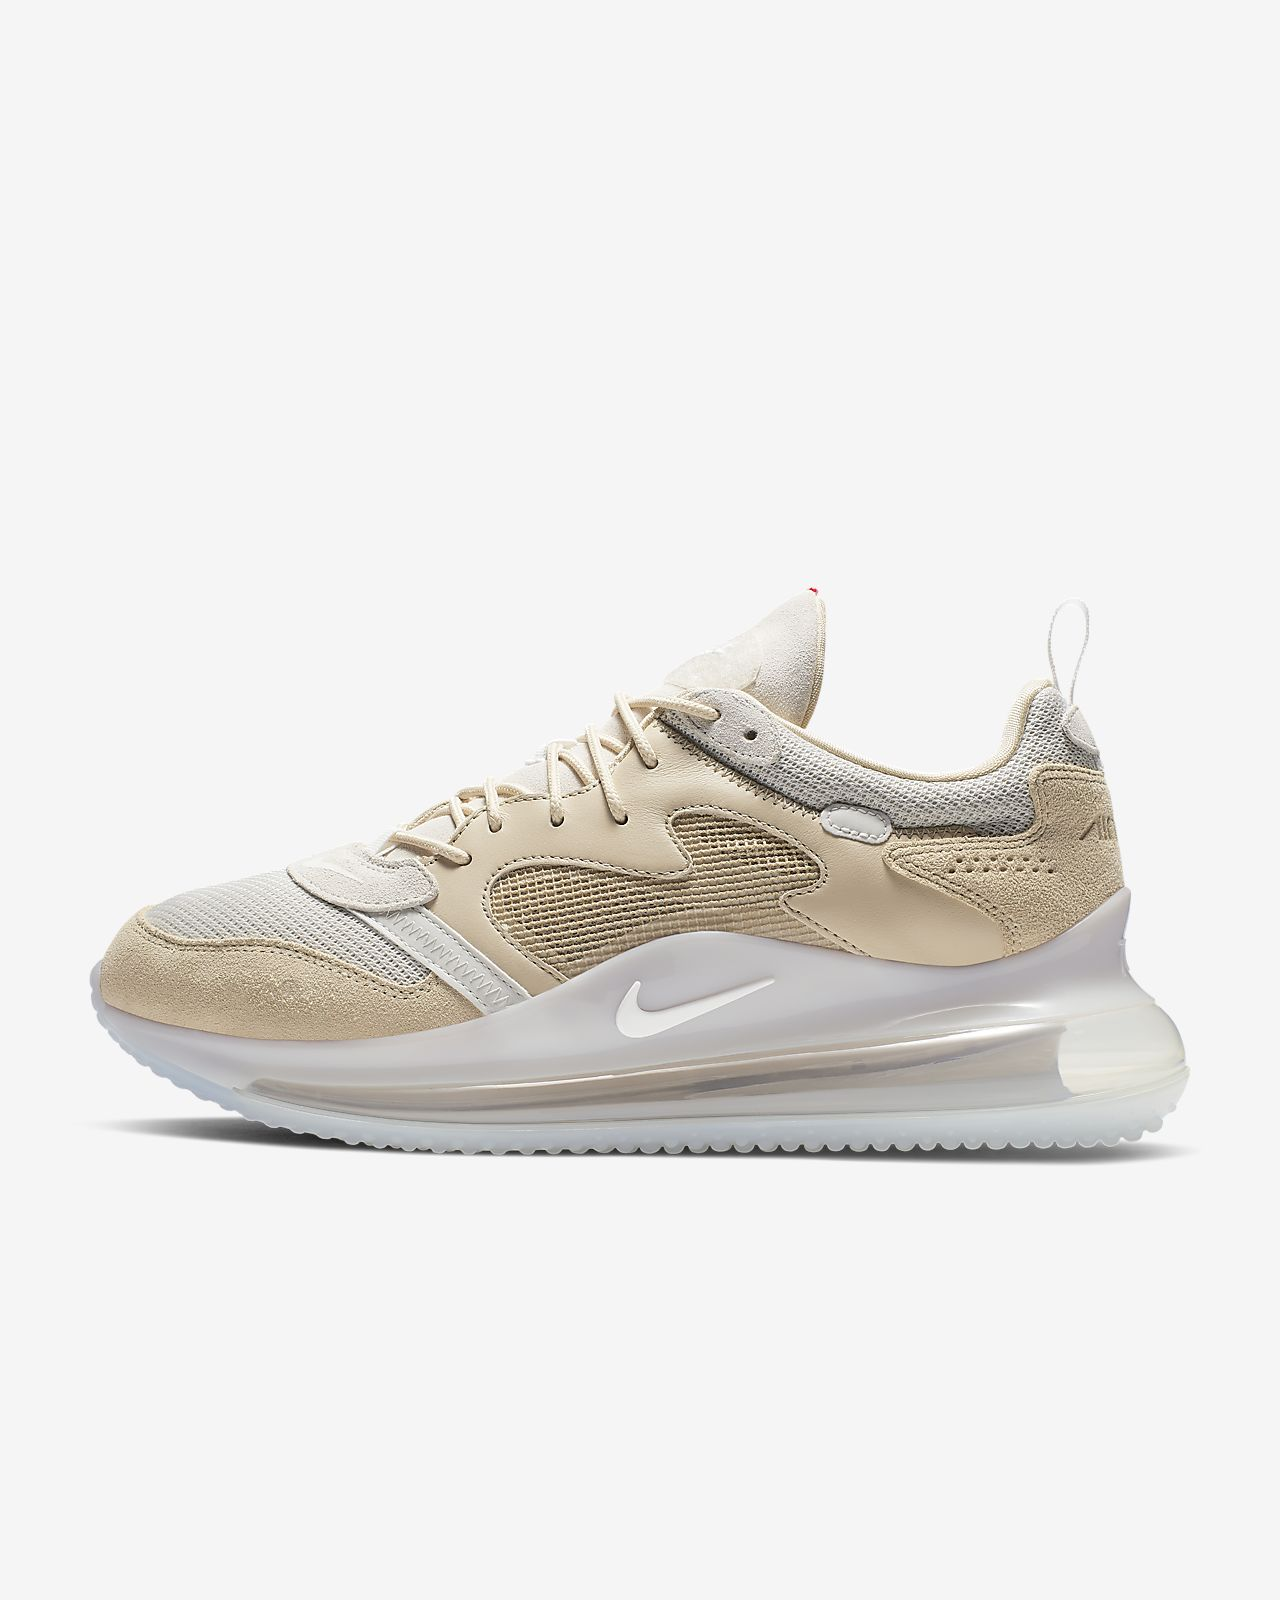 Air Max 720 OBJ Suede, Leather and Mesh Sneakers